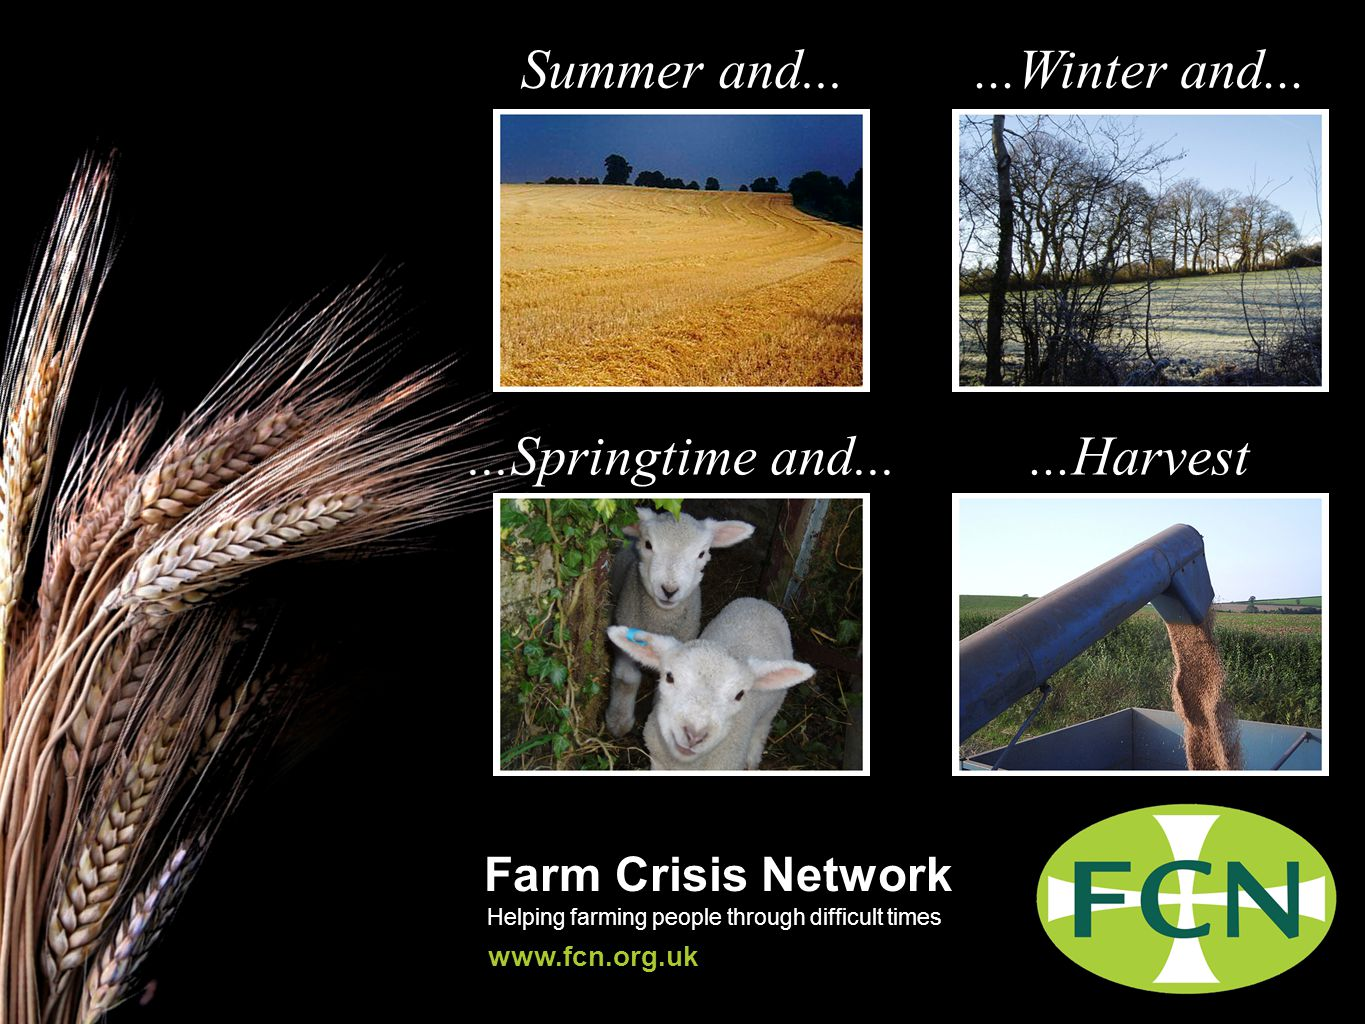 Farm Crisis Network Helping farming people through difficult times www.fcn.org.uk Summer and......Winter and......Springtime and......Harvest